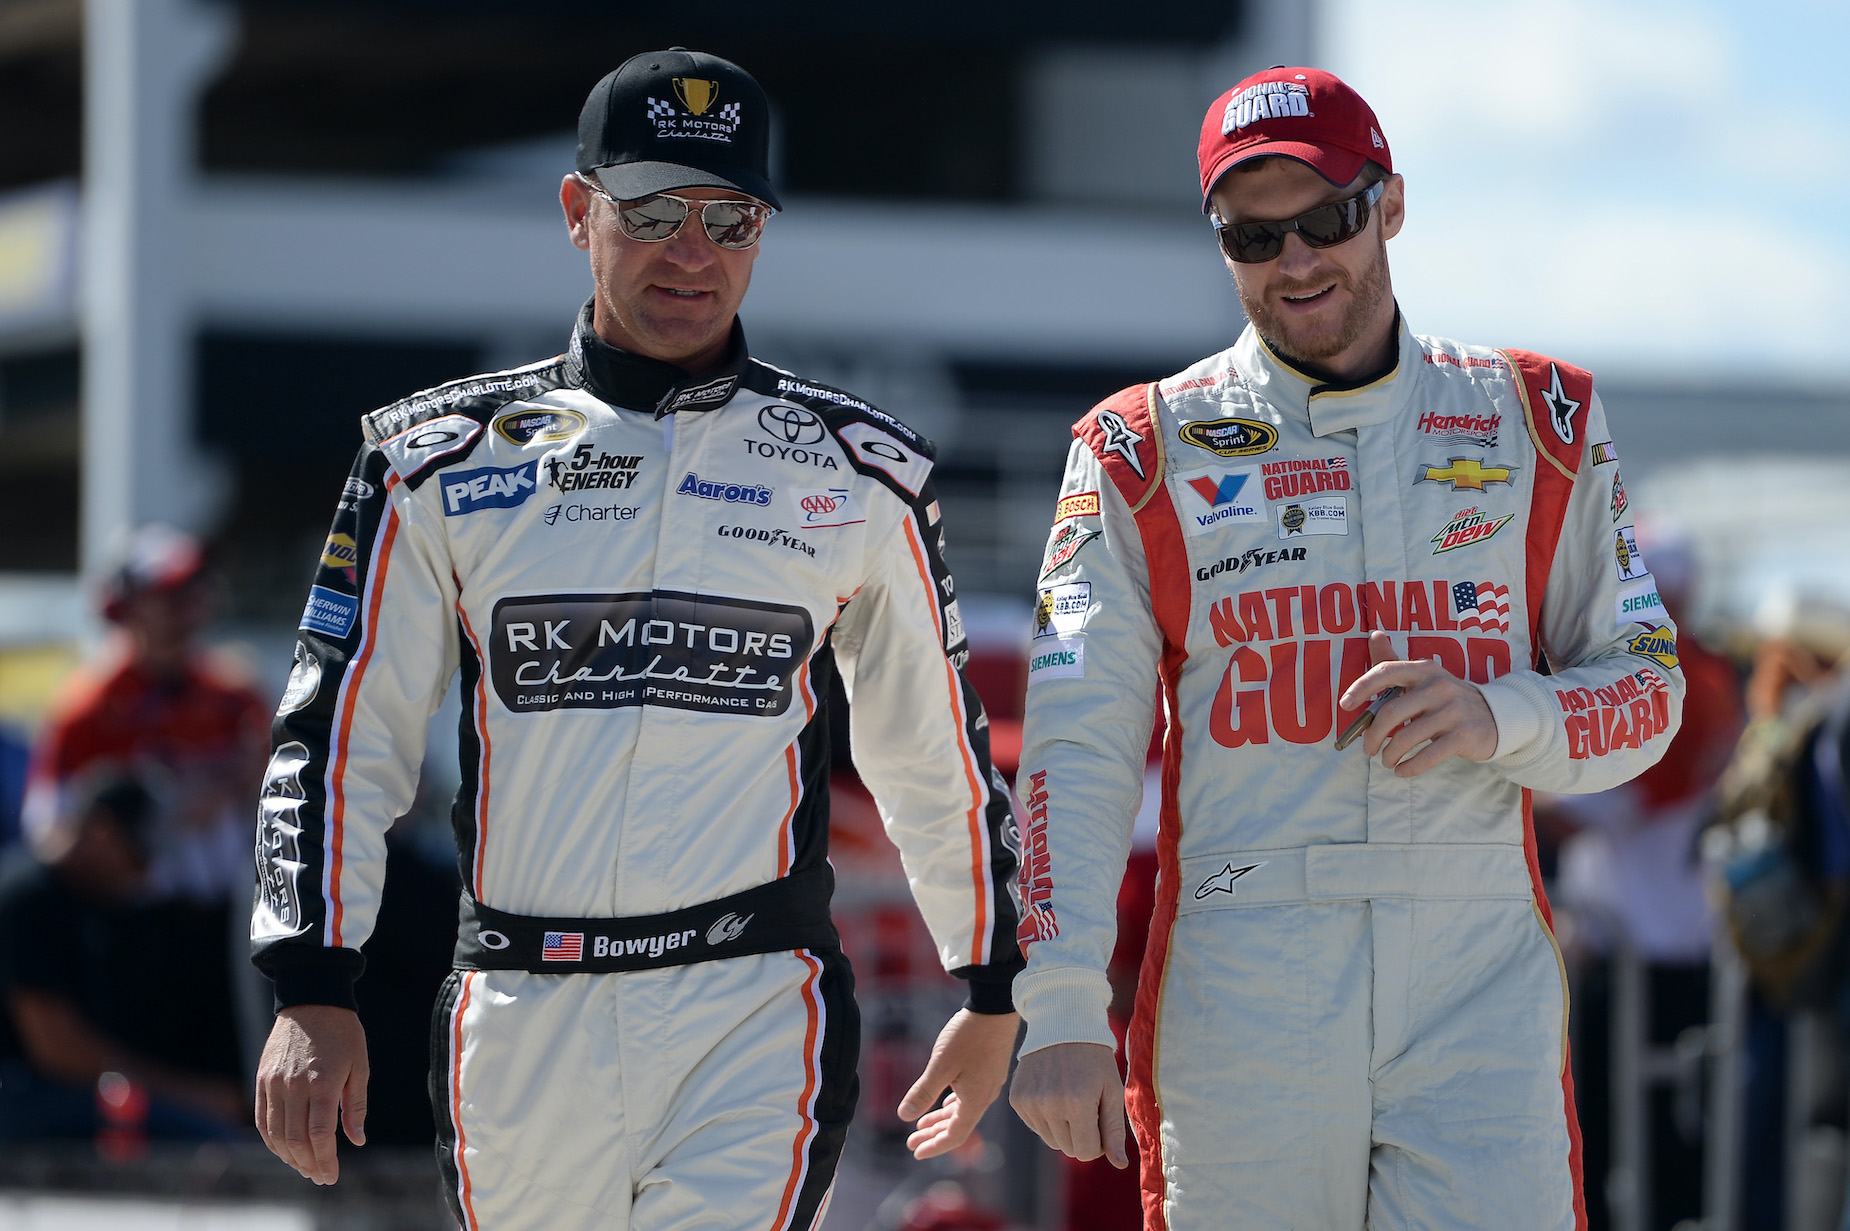 NASCAR Drivers Clint Bowyer (L) and Dale Earnhardt Jr. (R) walk together at Pocono Raceway on June 6, 2014